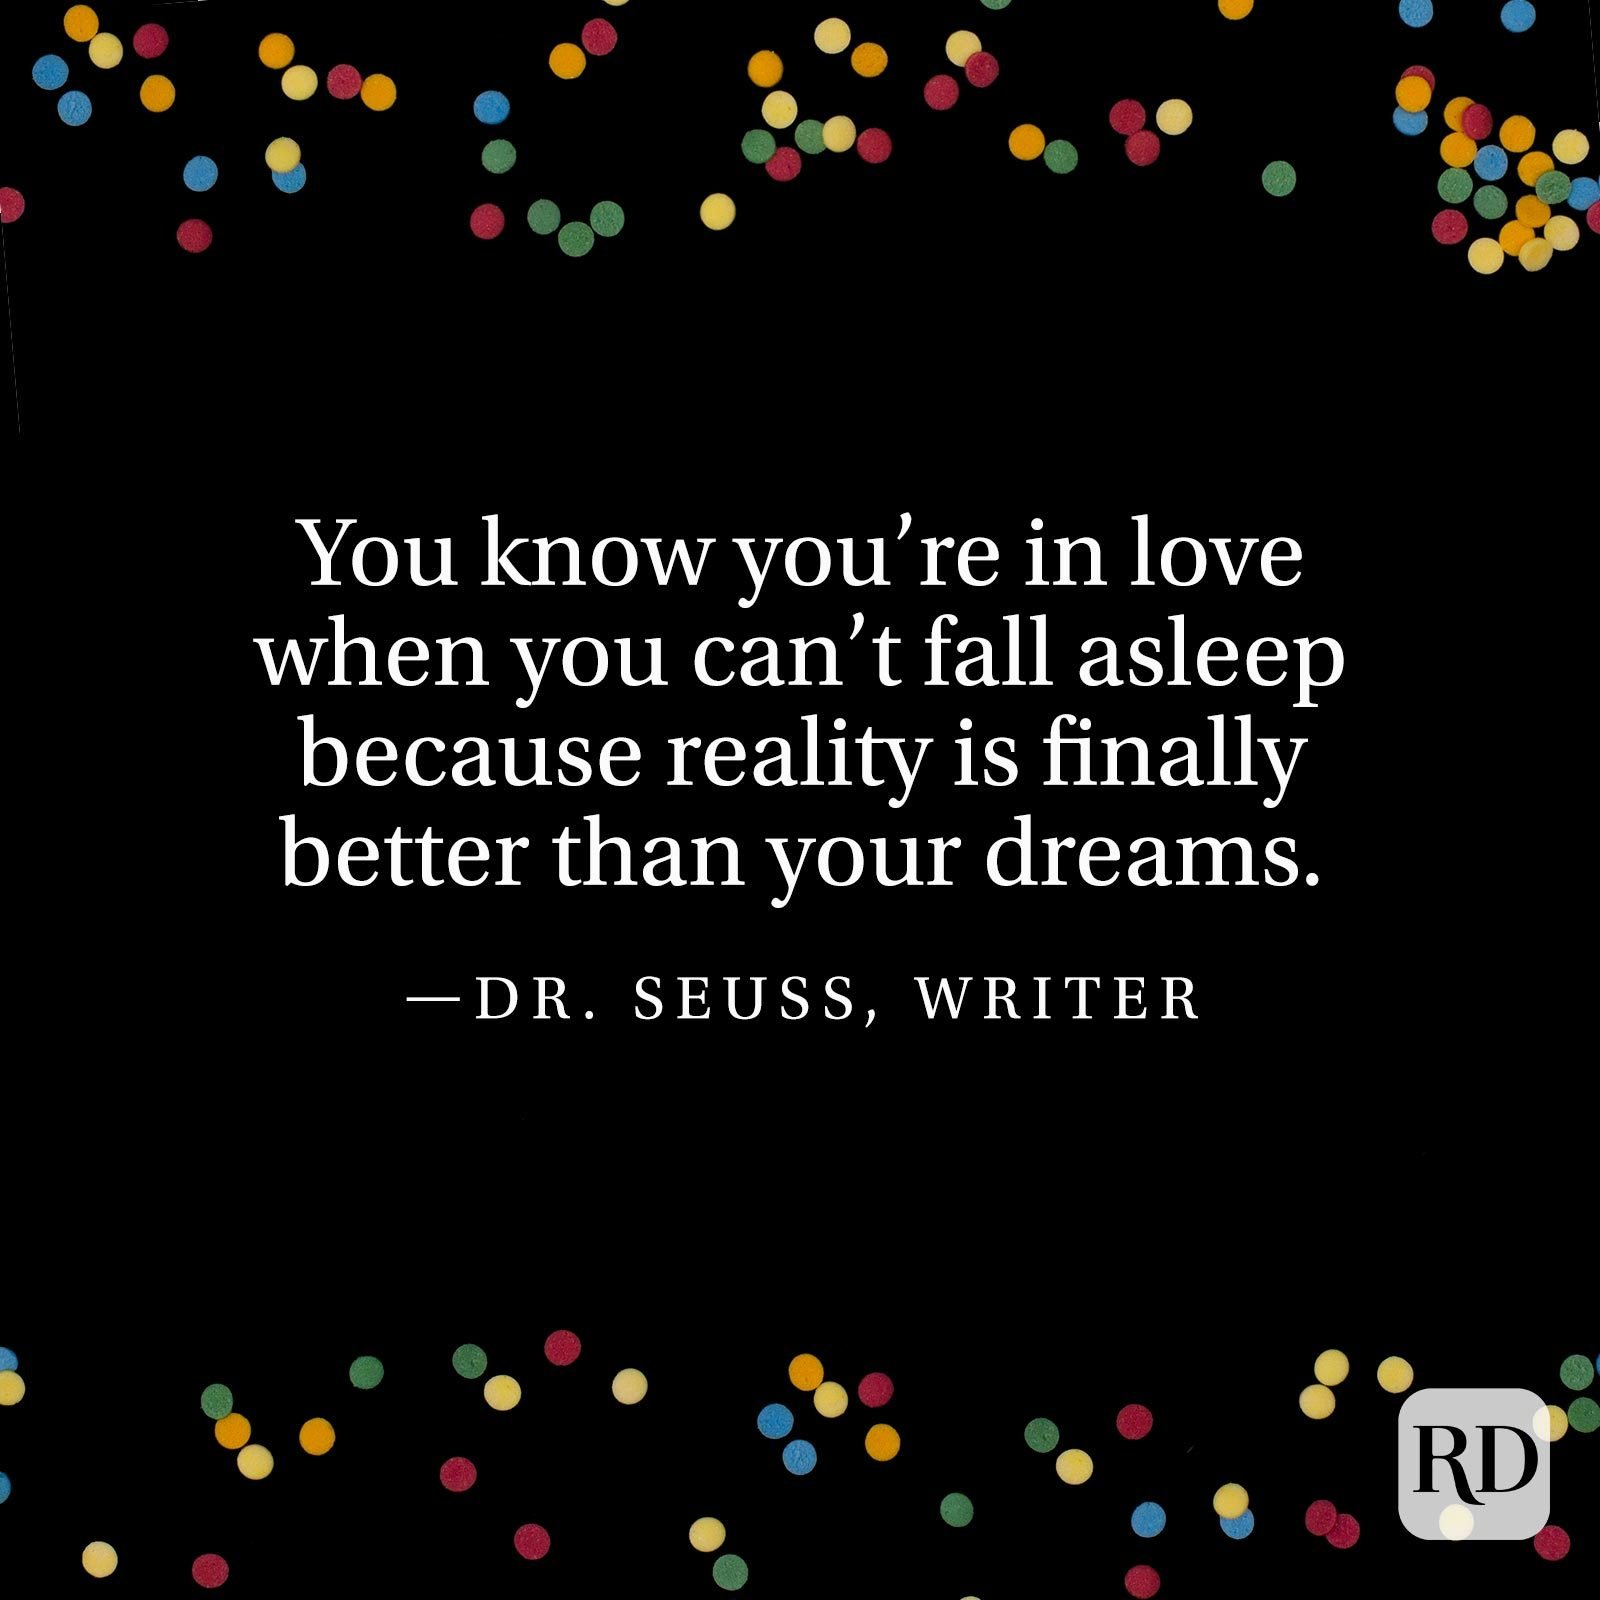 """You know you're in love when you can't fall asleep because reality is finally better than your dreams.""—Dr. Seuss, writer"